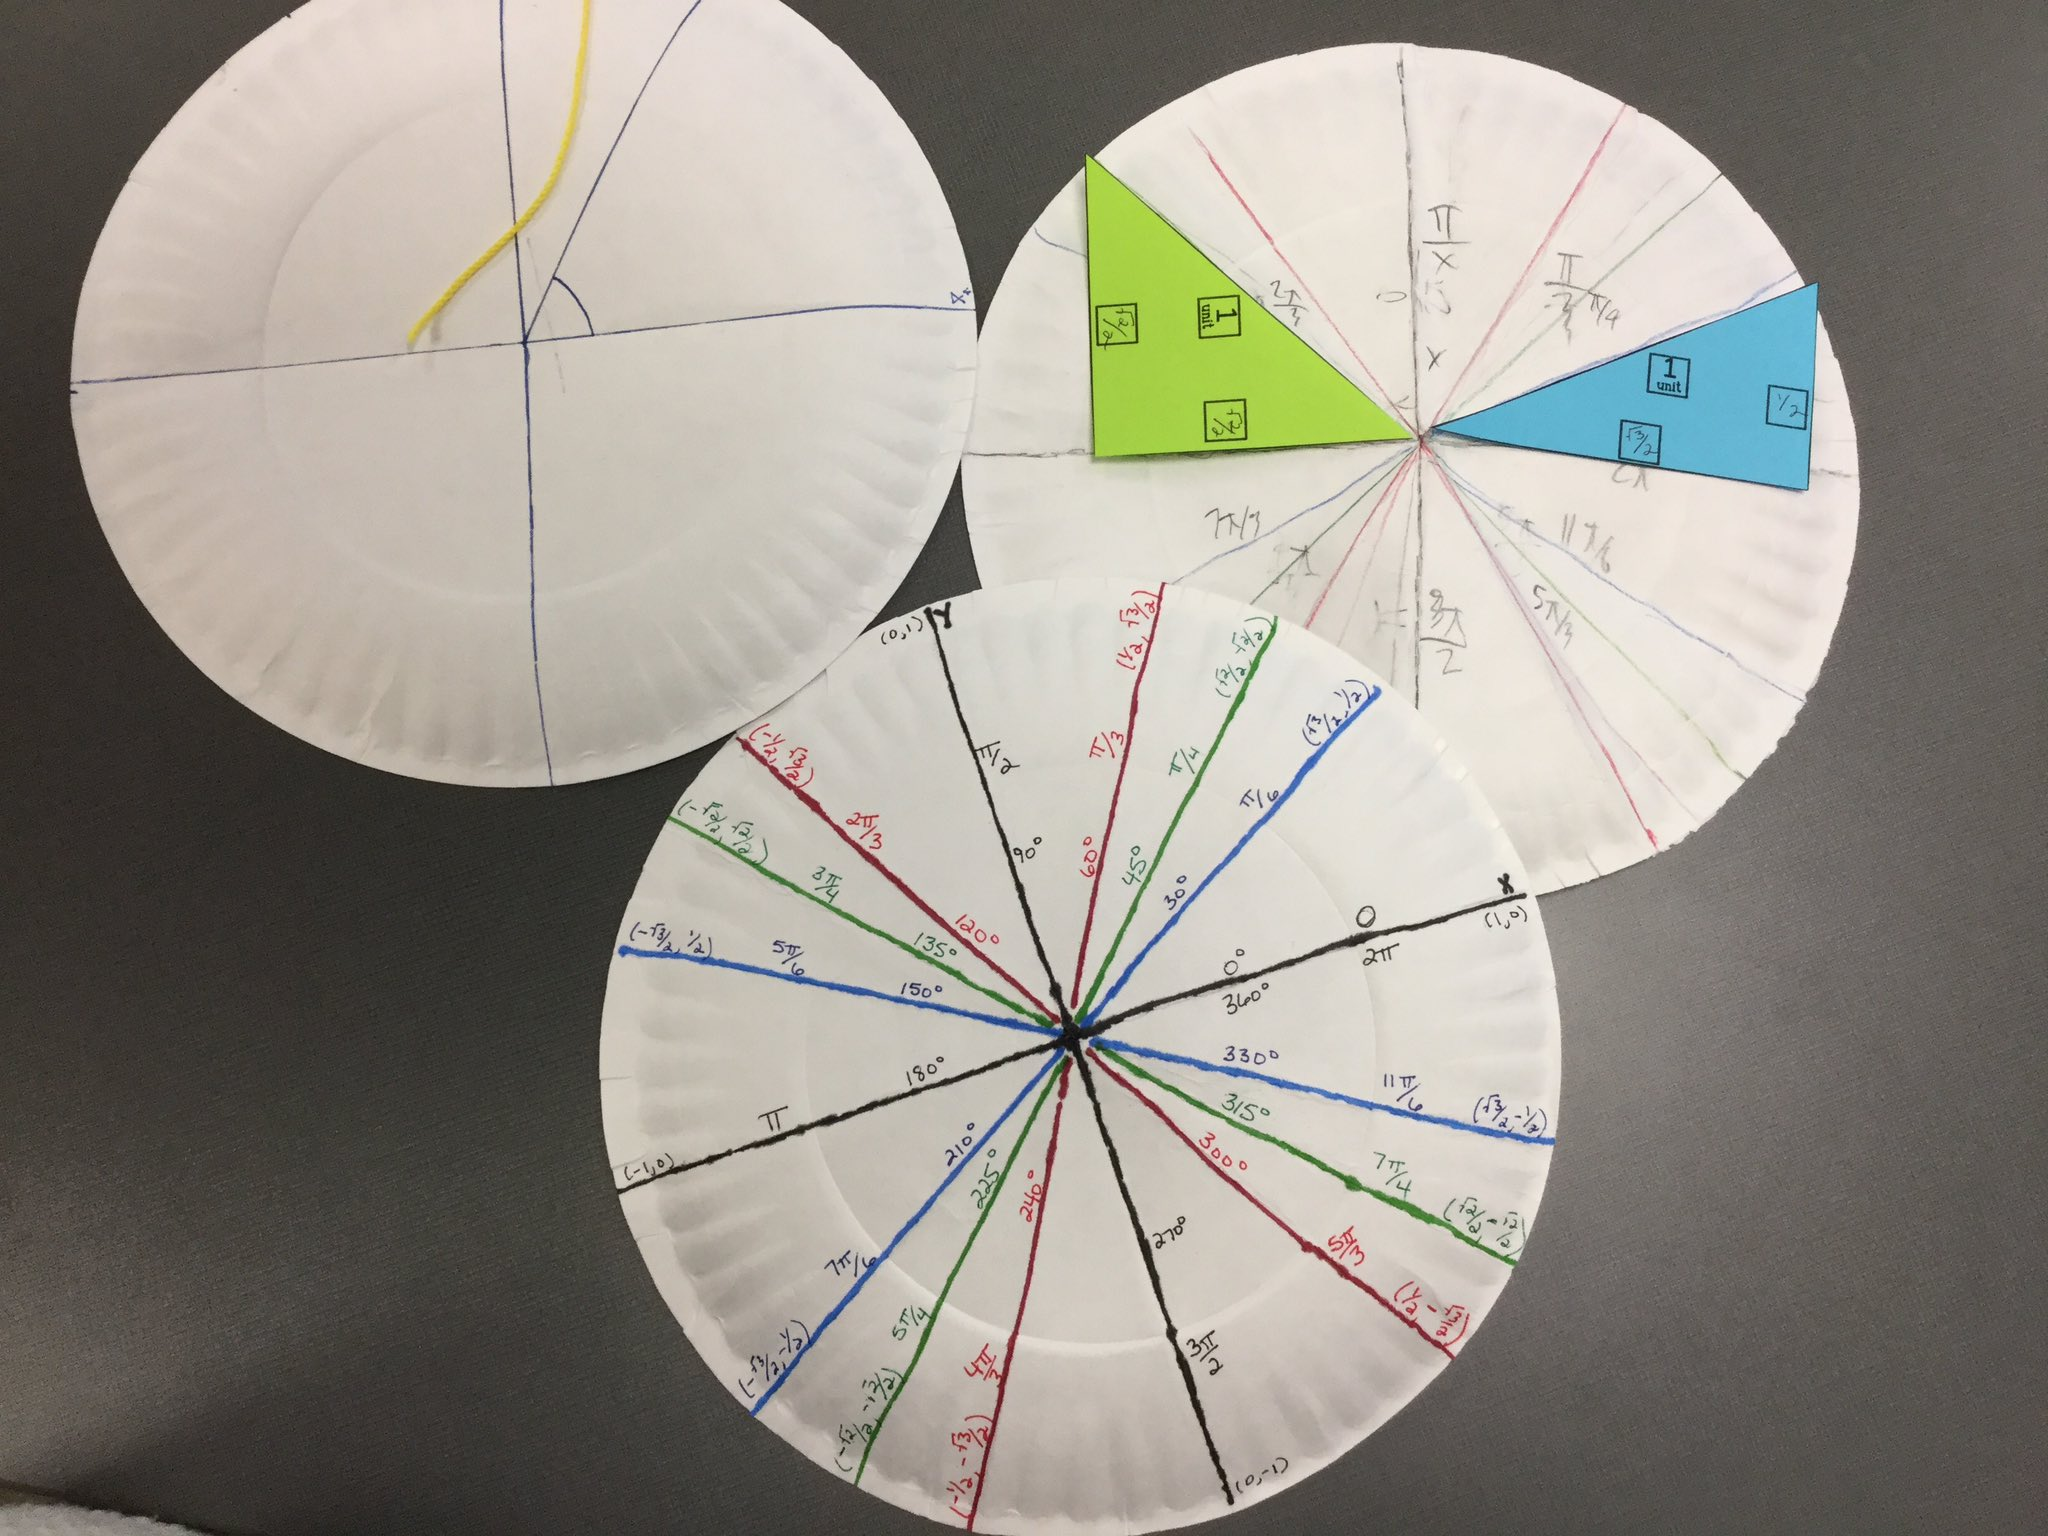 Discovered radians and the unit circle in precalc this week. Love it! :) #ourbmsa https://t.co/W52OICIODH